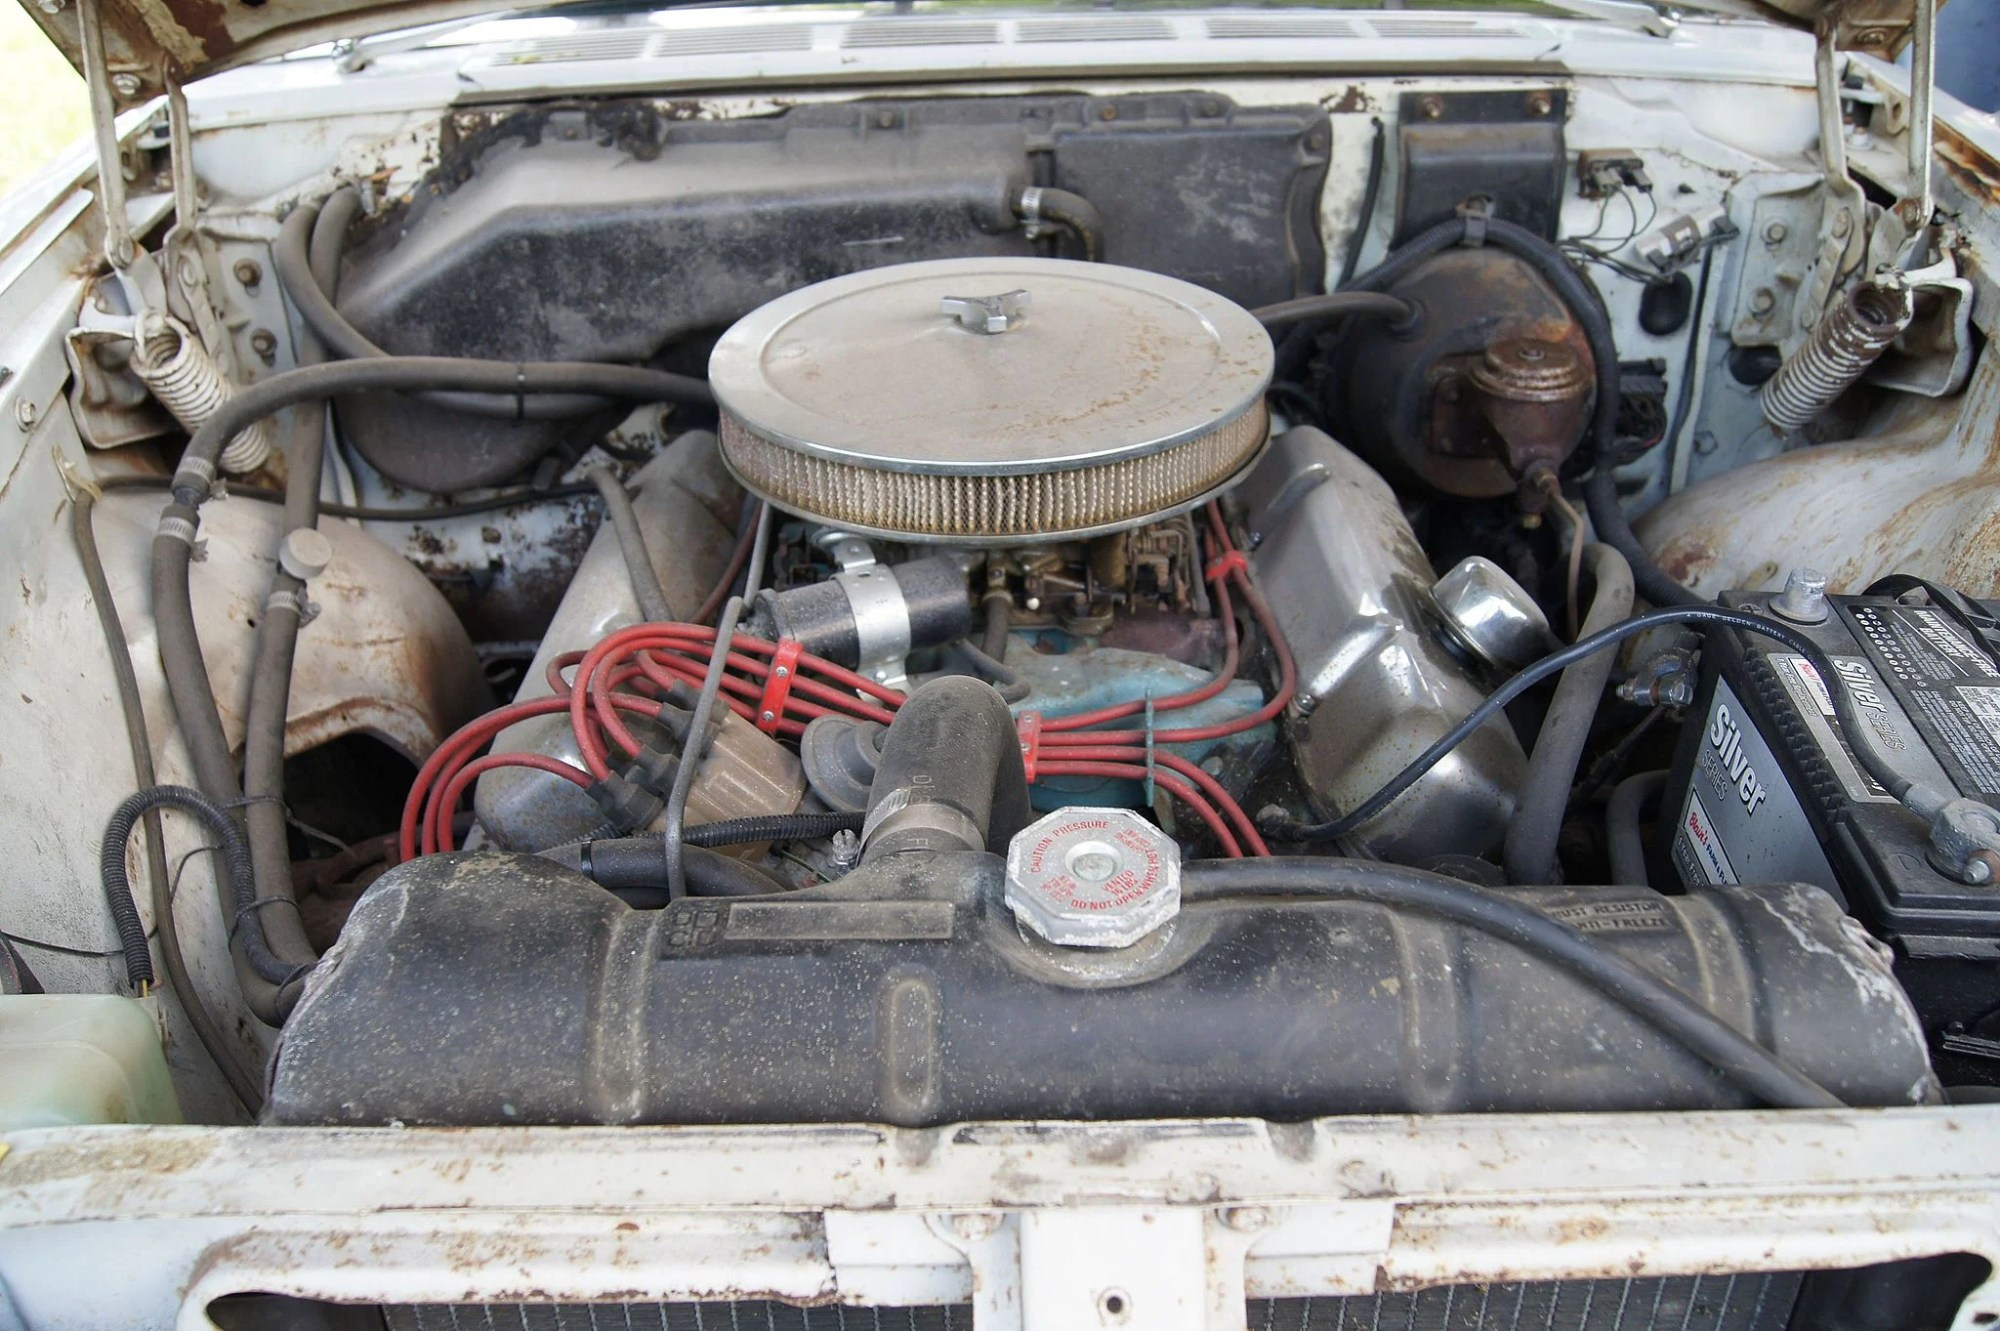 hight resolution of the 426 hemi first arrived in 1964 as a competition only option but the street hemi showed up in 1965 to replace the max wedge the hemi stayed strong at